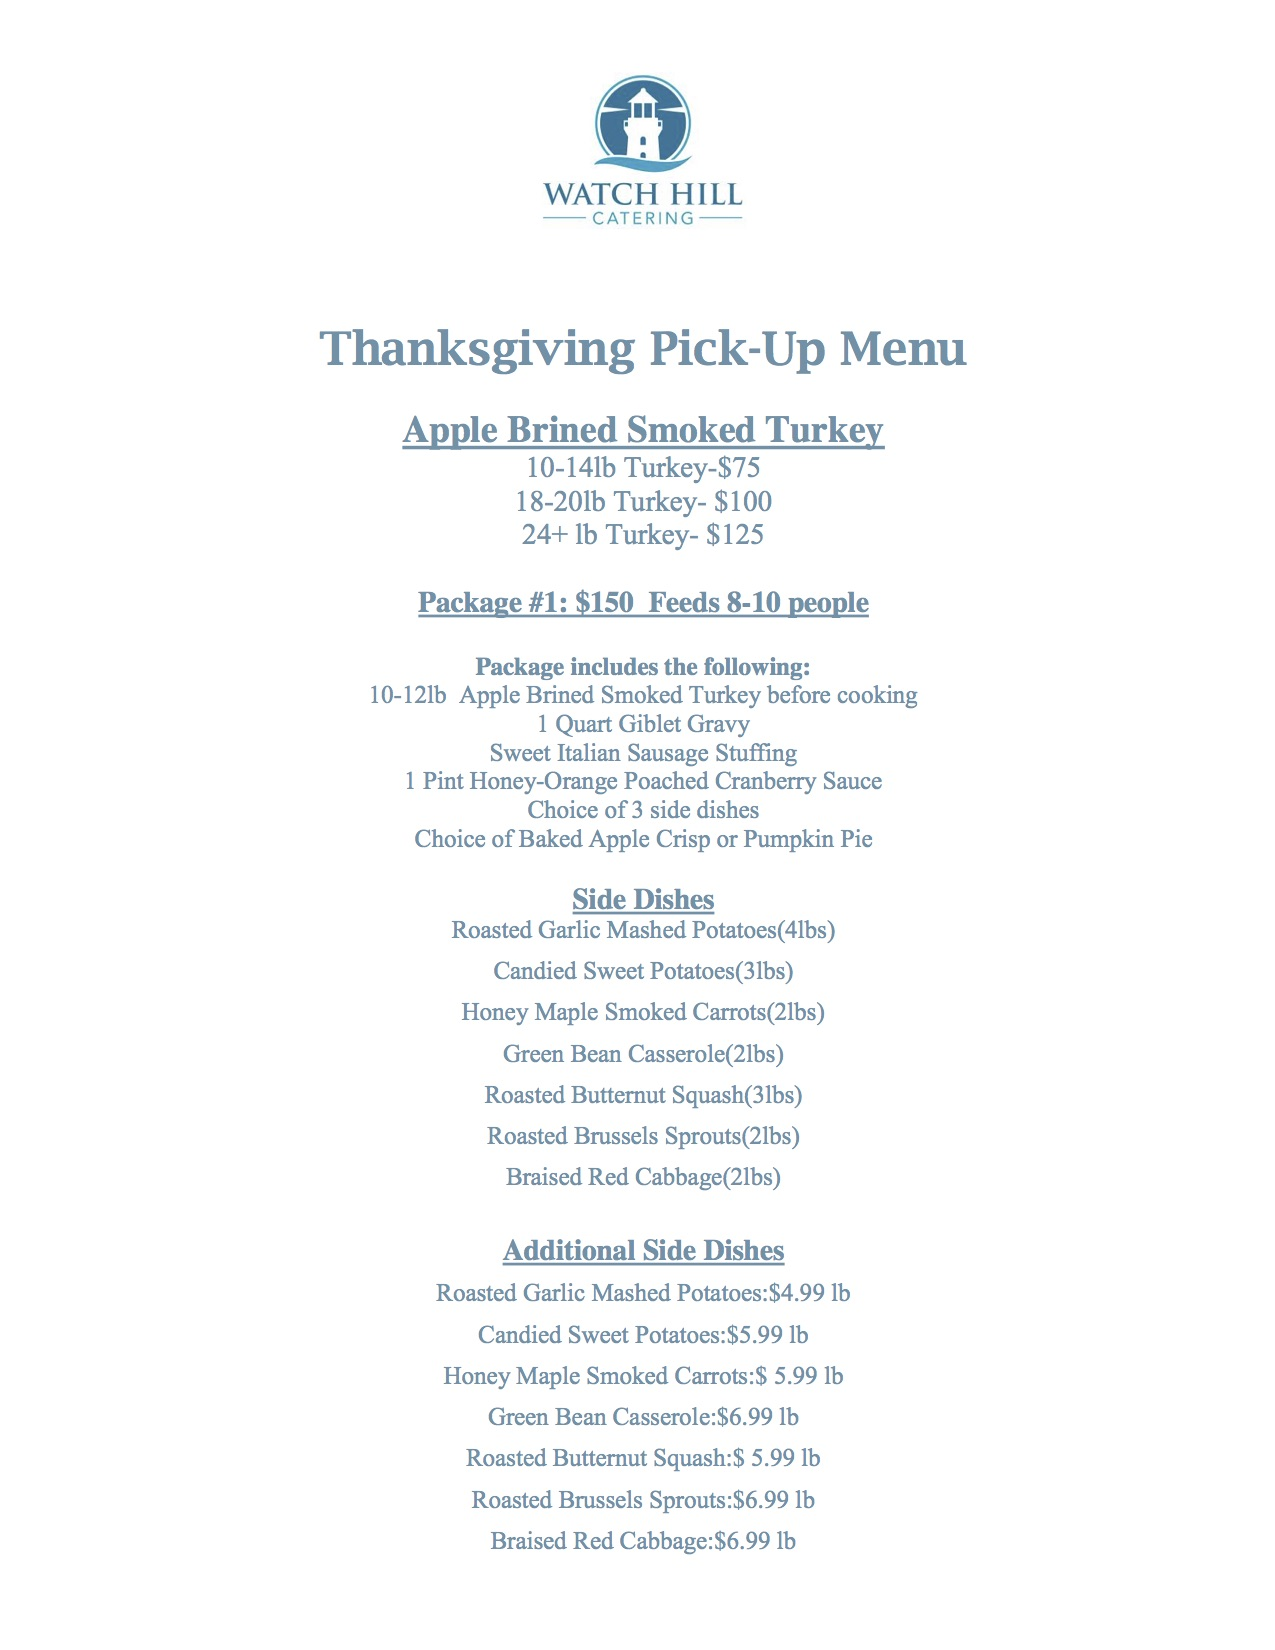 Thanksgiving Pick up Menu Packages and Additions